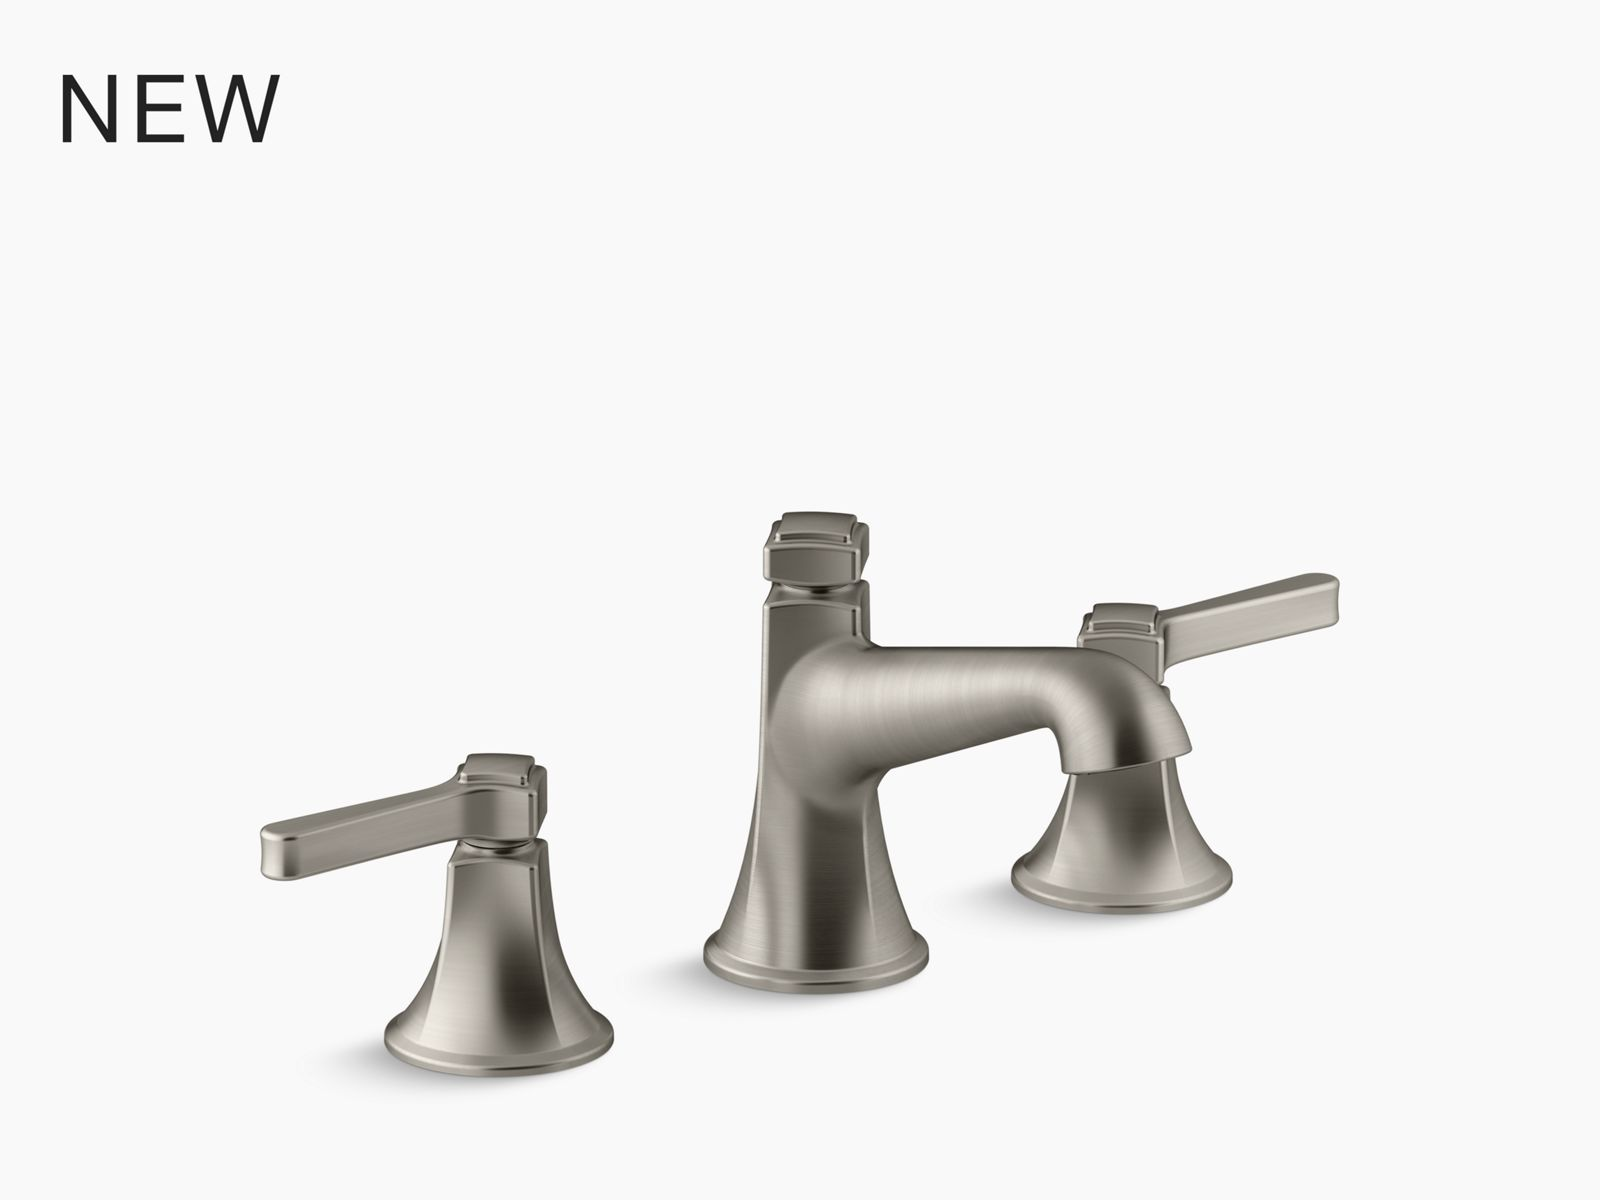 purist two hole kitchen sink faucet with 8 spout and matching finish sidespray